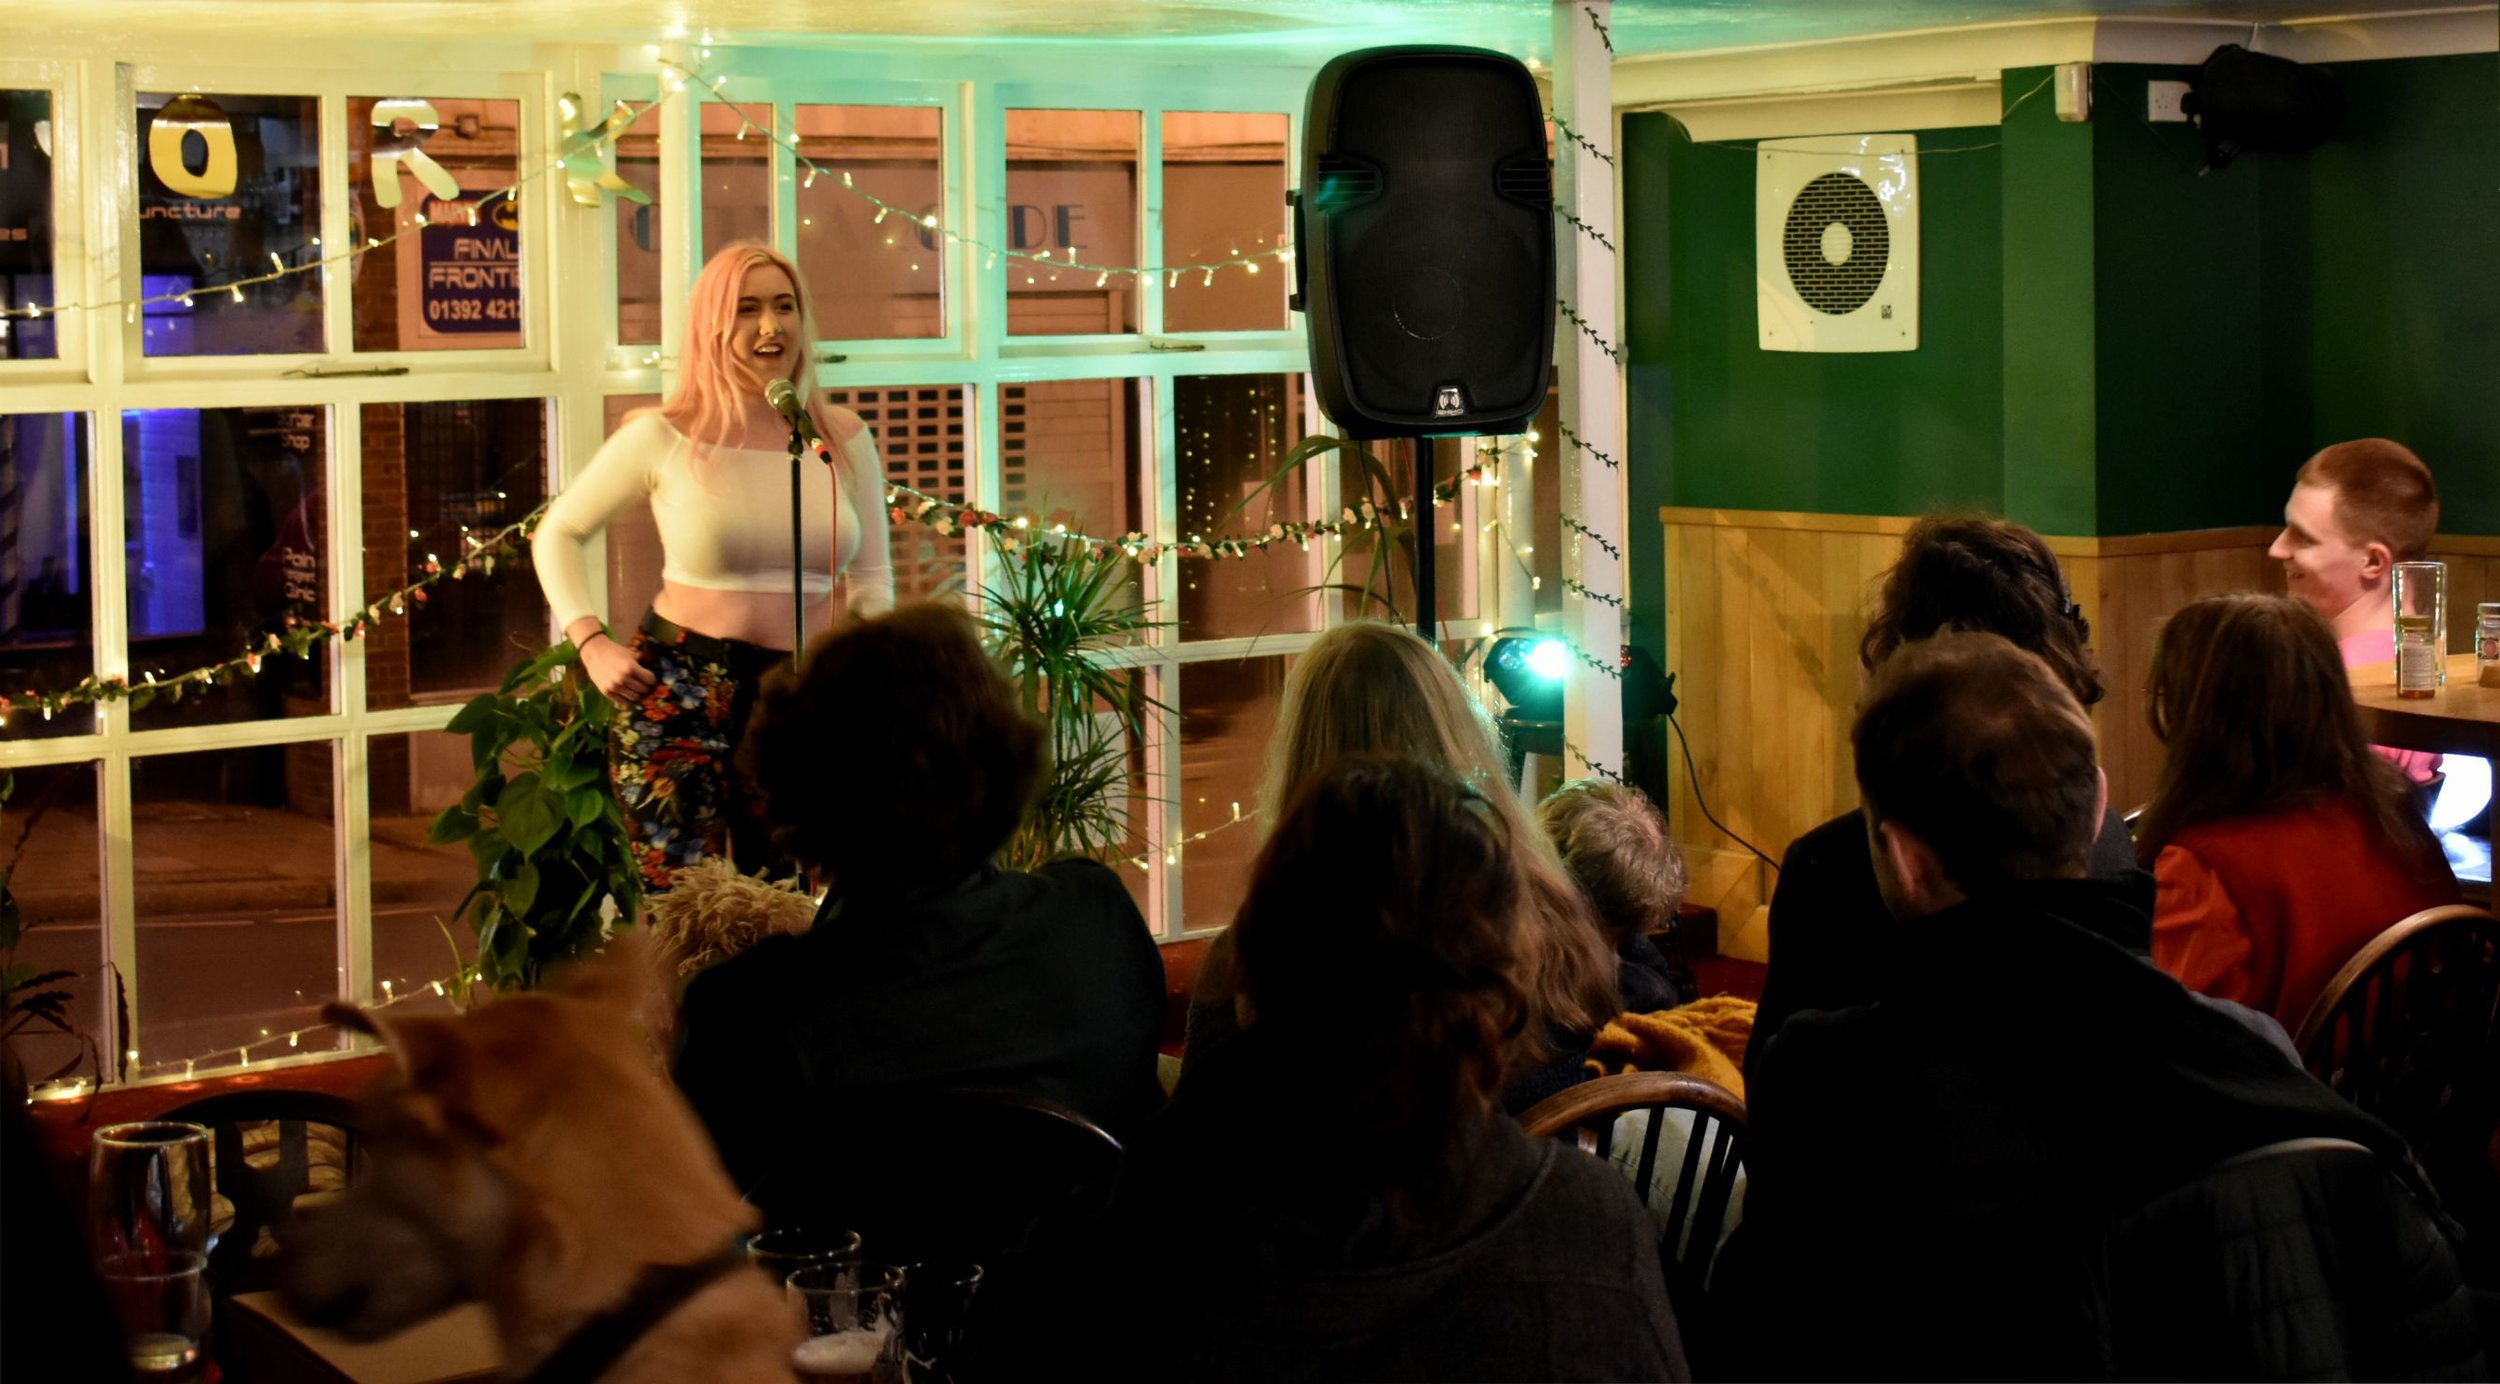 Imogen Downes headlining at Spork! in January. Photo by Lewis Plumb.